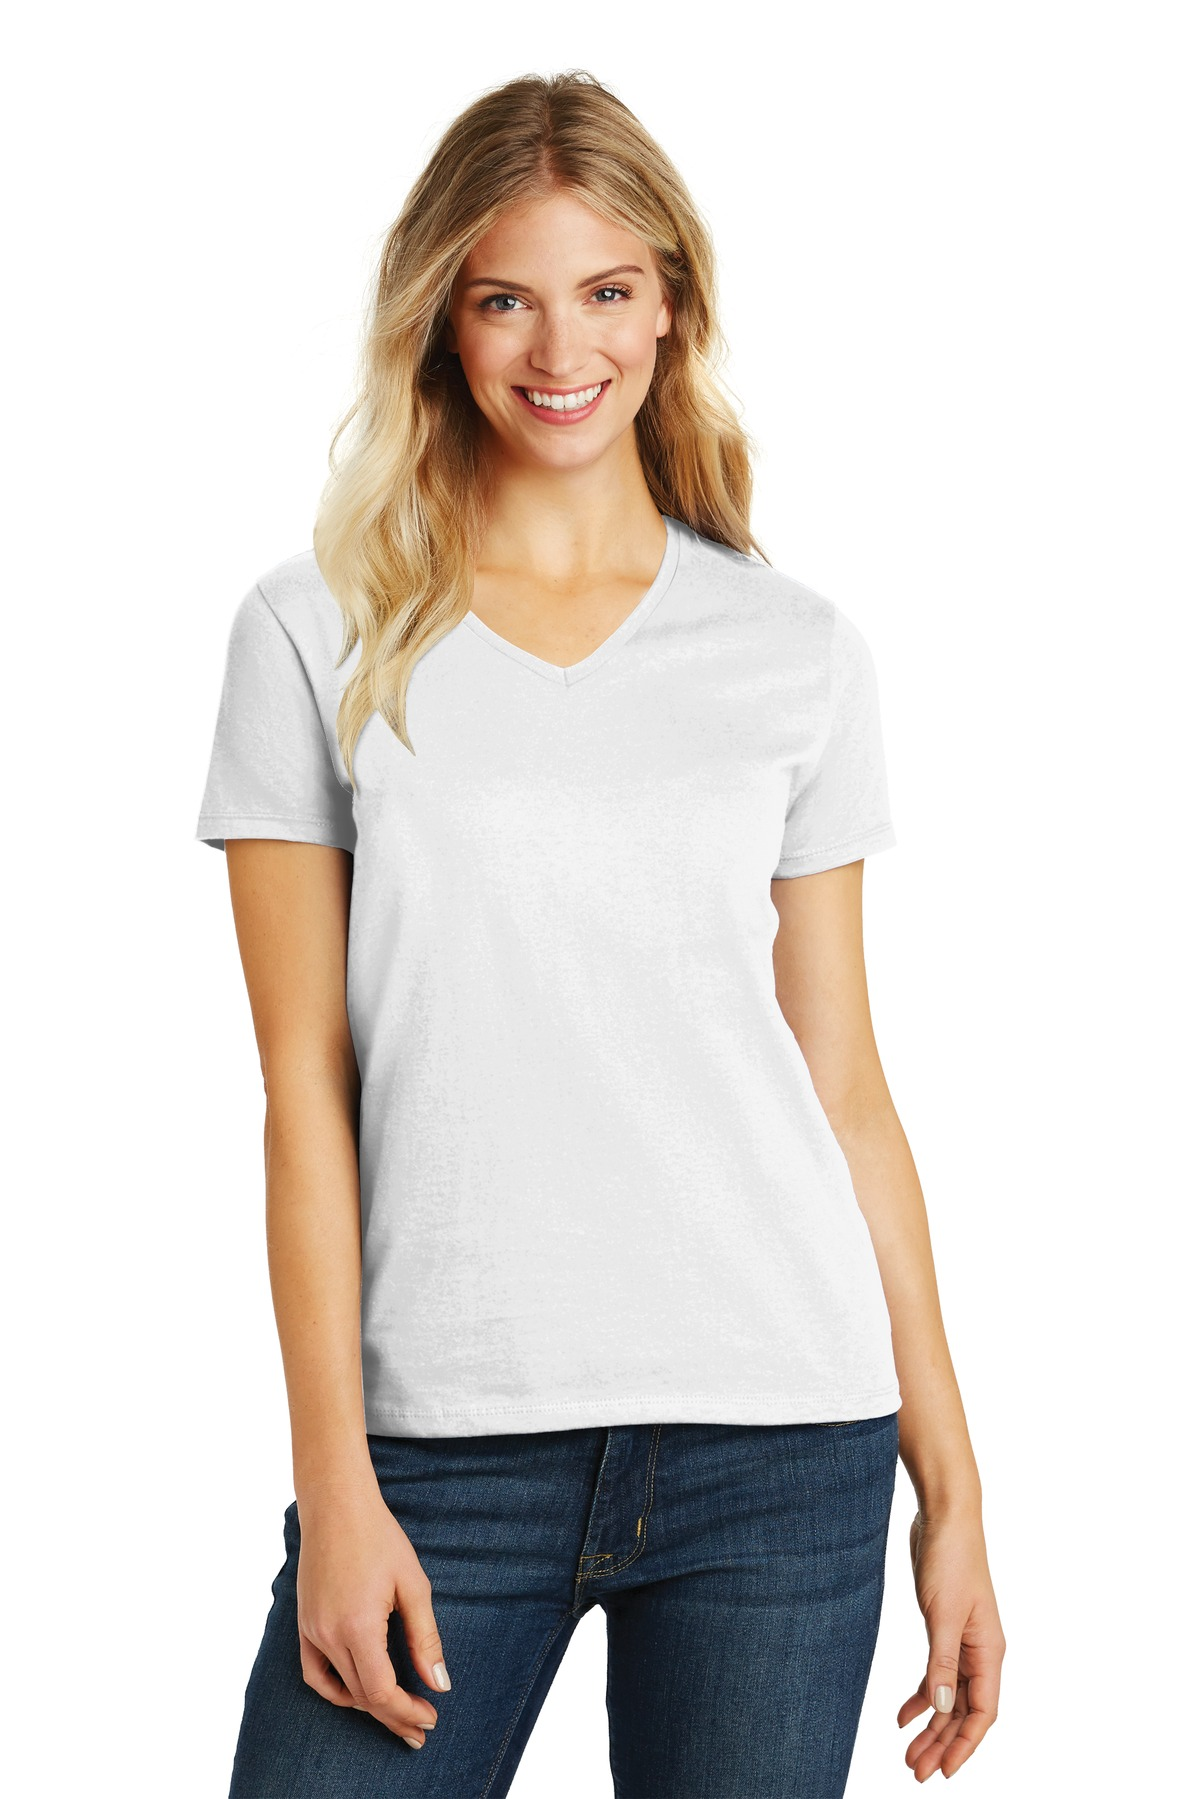 1c009588544 Buy District® Women s Perfect Blend® V-Neck Tee. - District Online ...